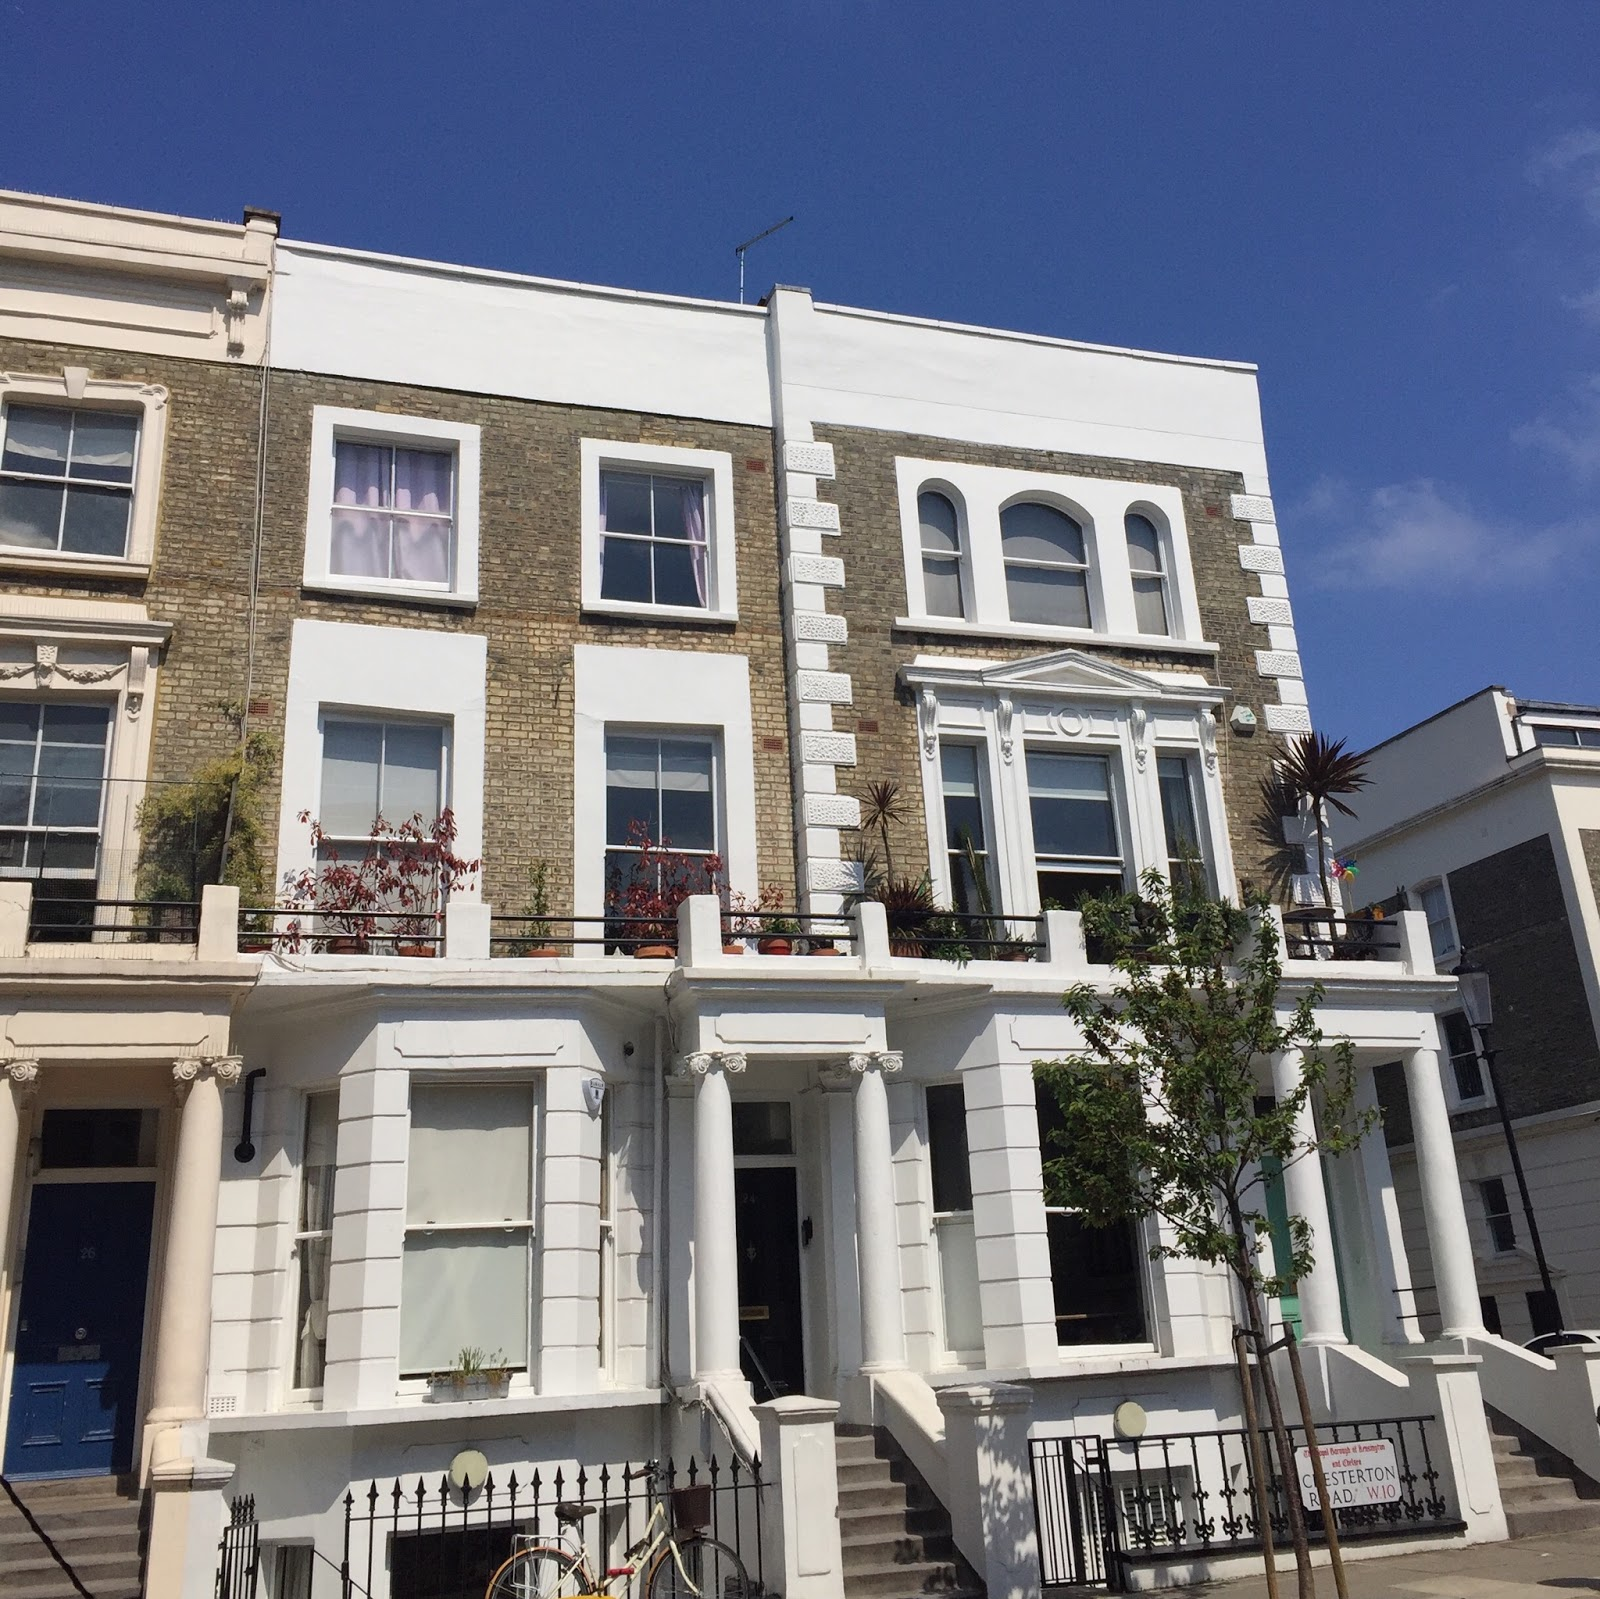 Row of houses in Notting Hill London